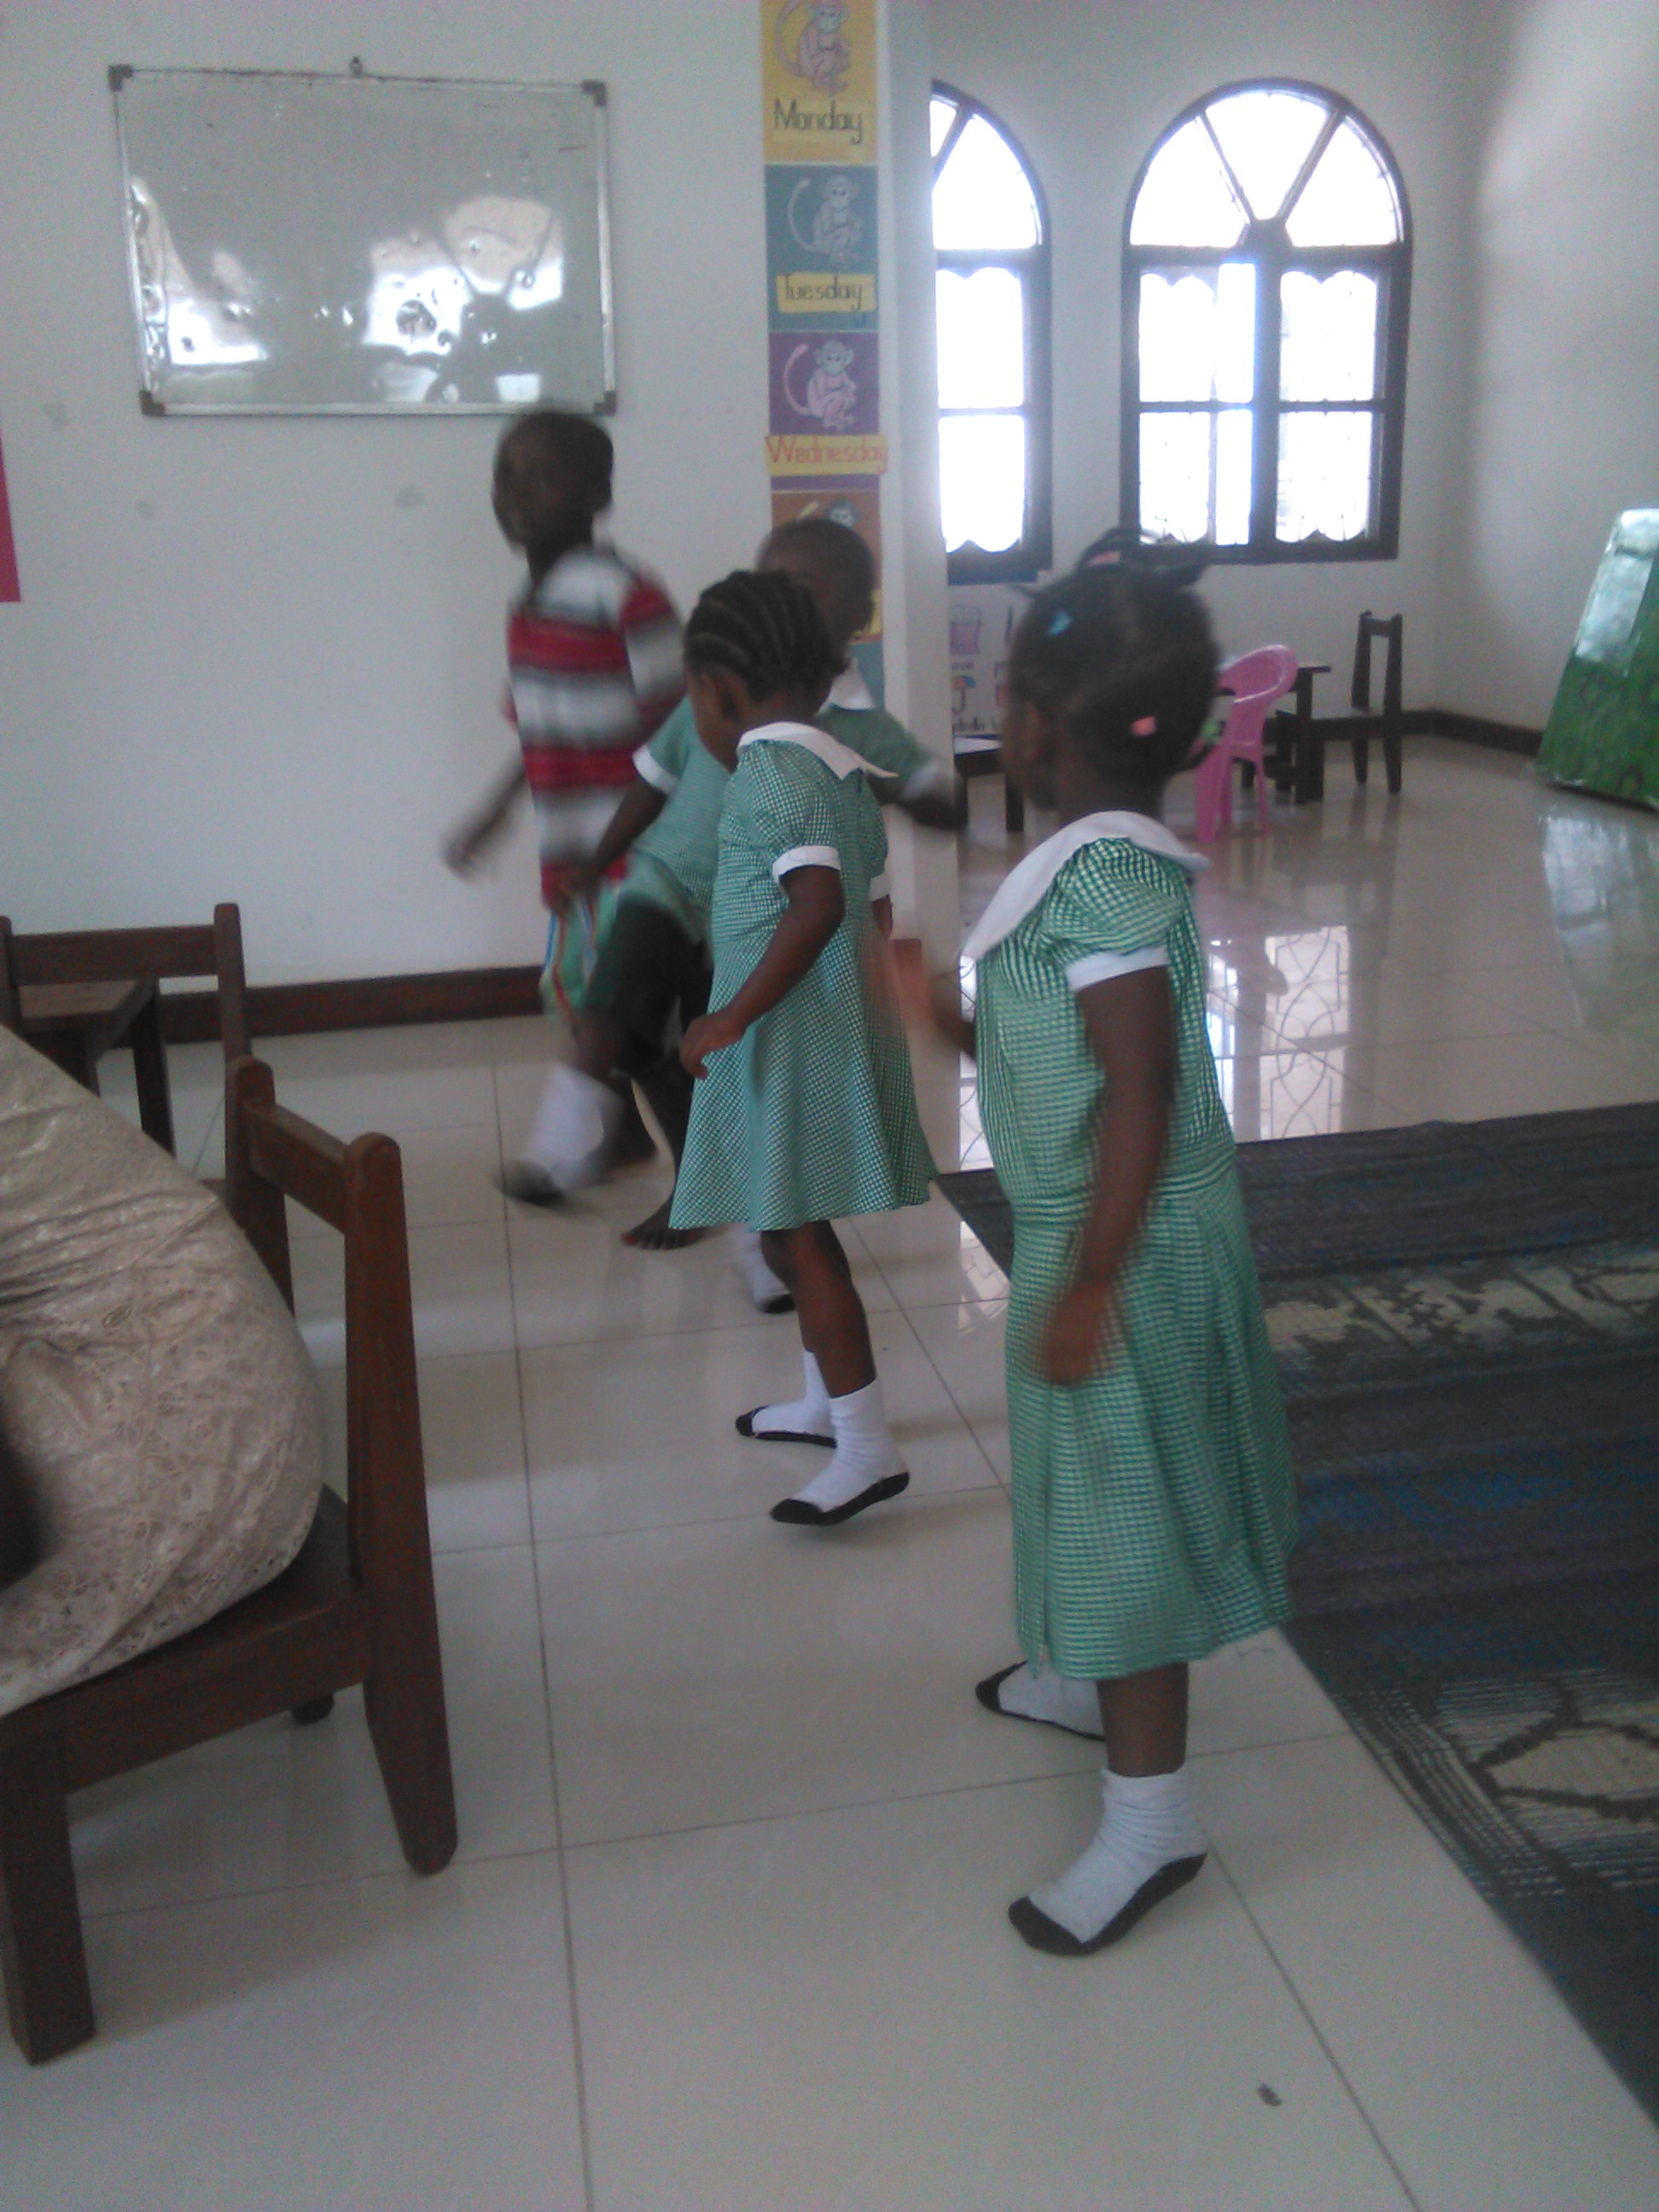 Stay in Dar es Salaam & volunteer to Teach English language, French, build a play area/ground, or bring other worldly experience for Kindergarten children.